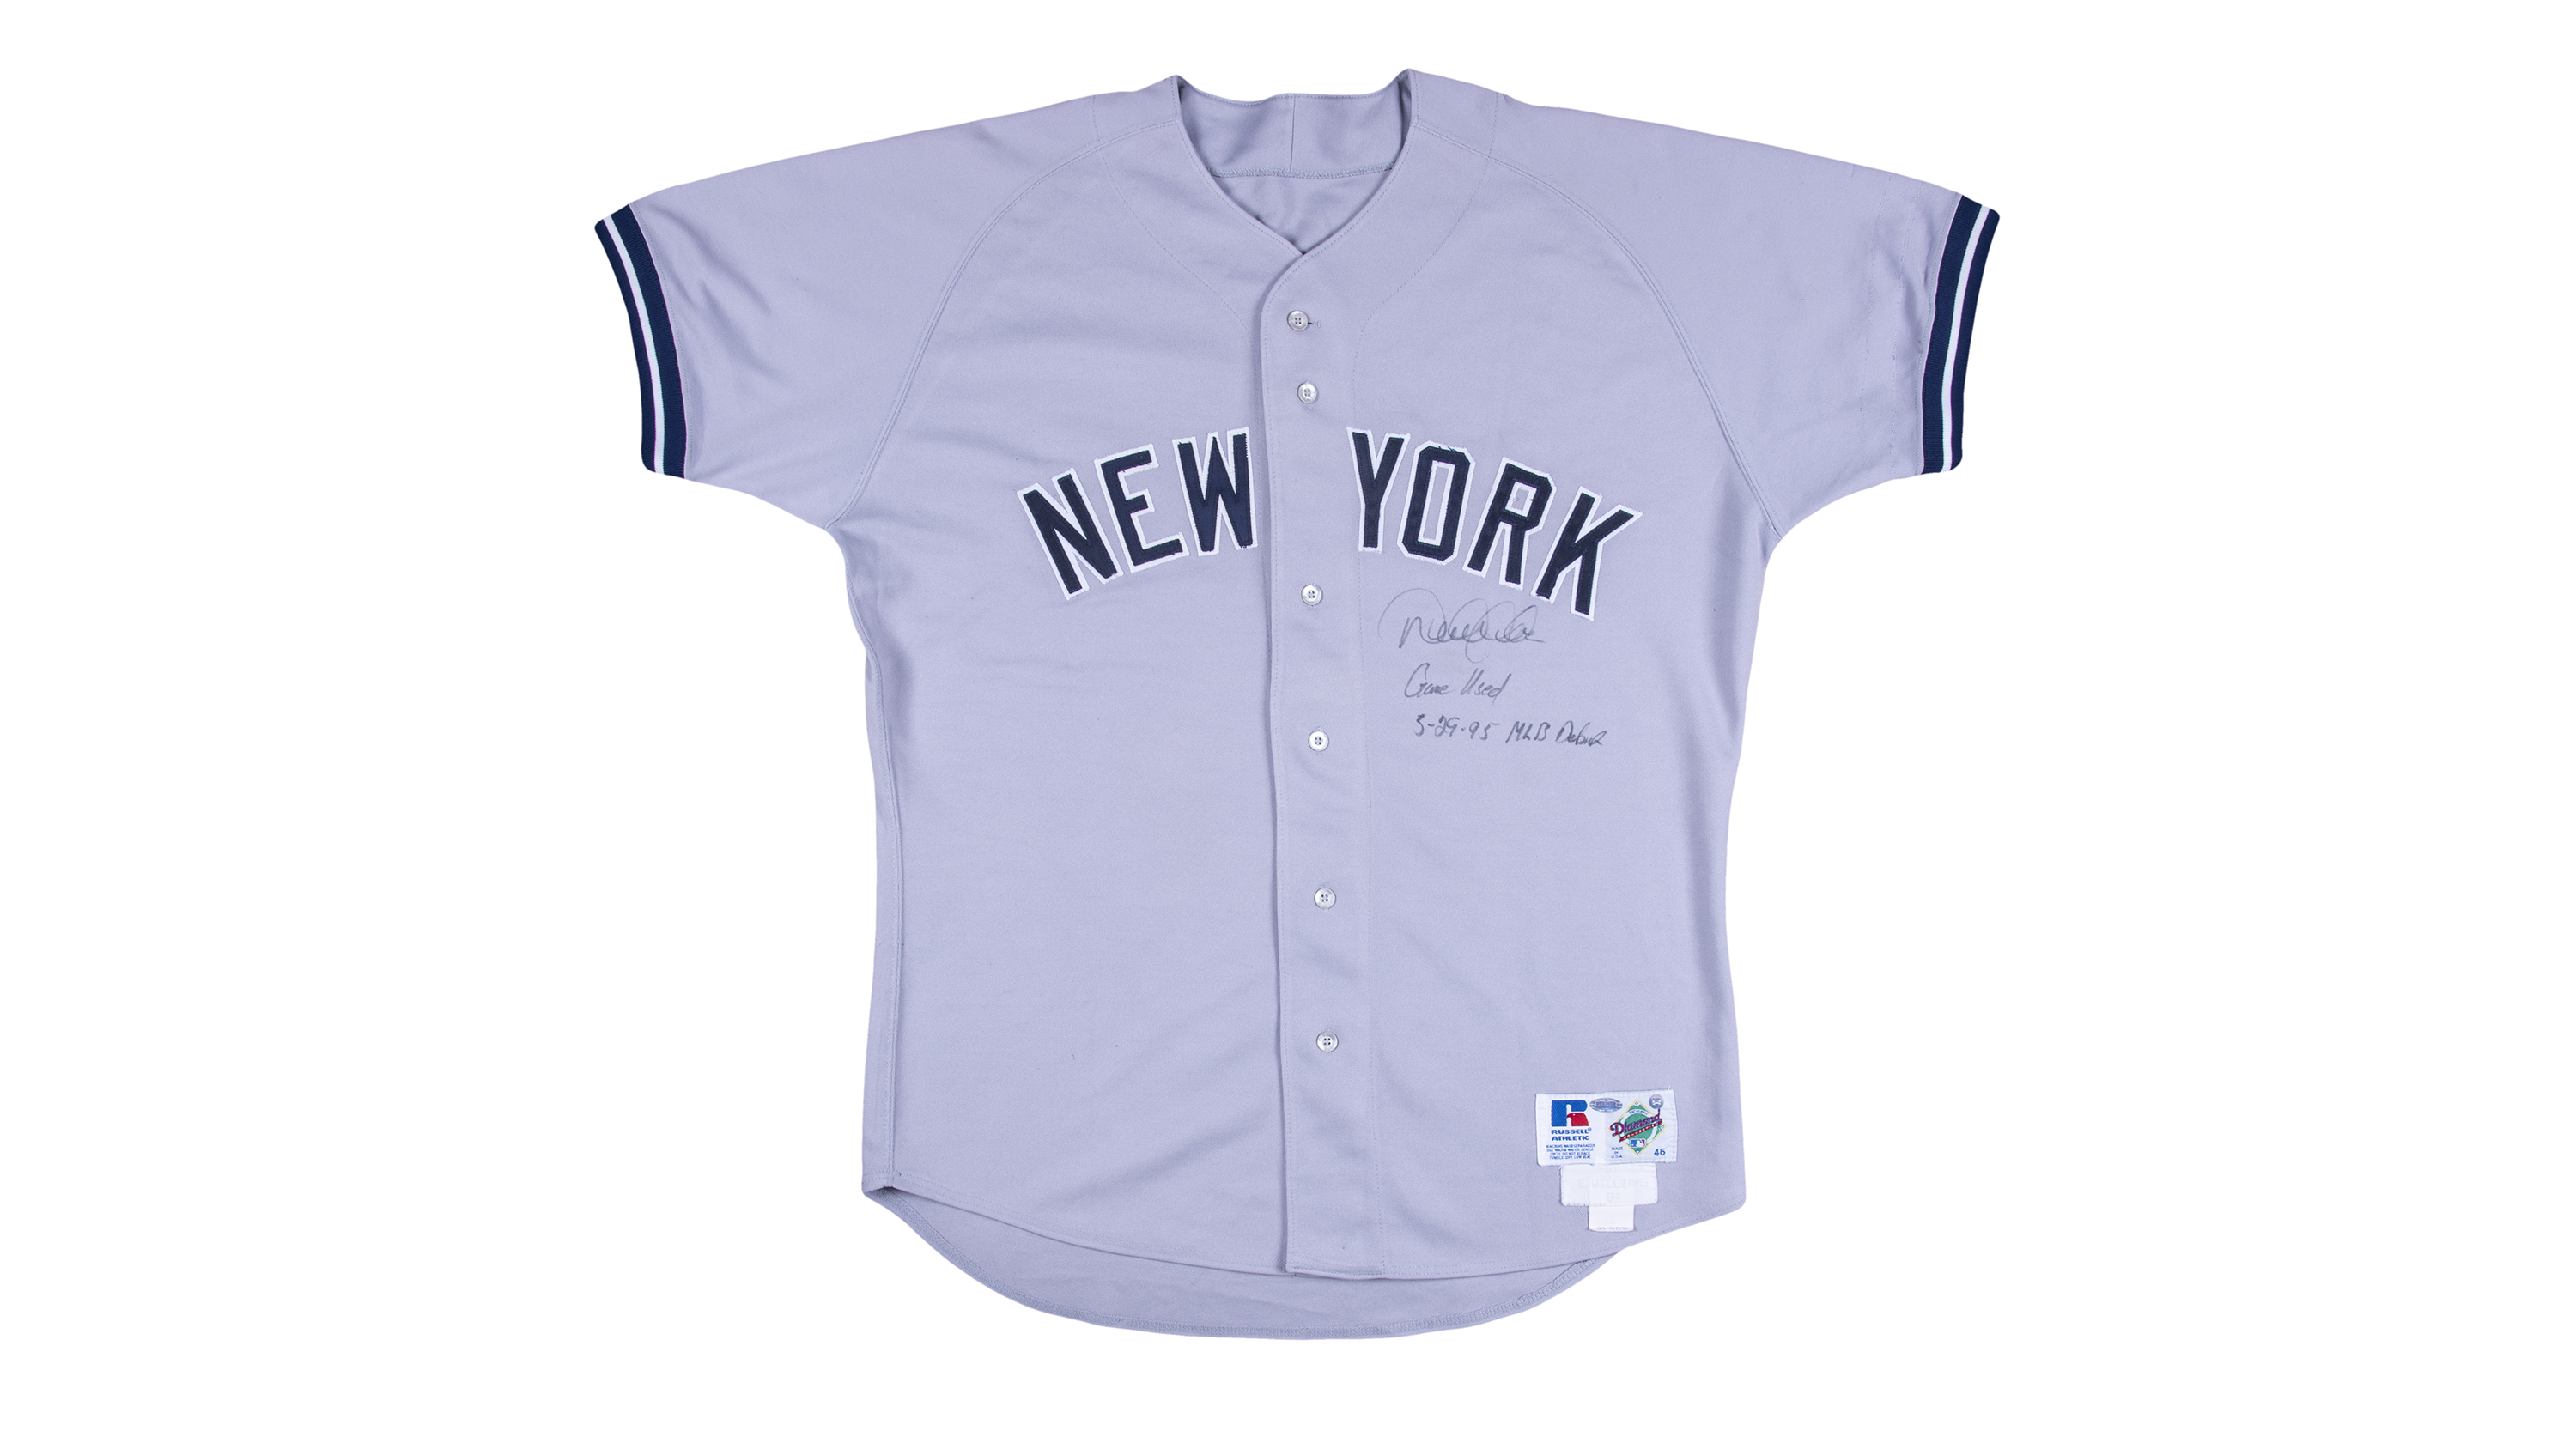 Derek Jeter's first Yankees jersey sold for $369,000, the most ever for a modern-era jersey